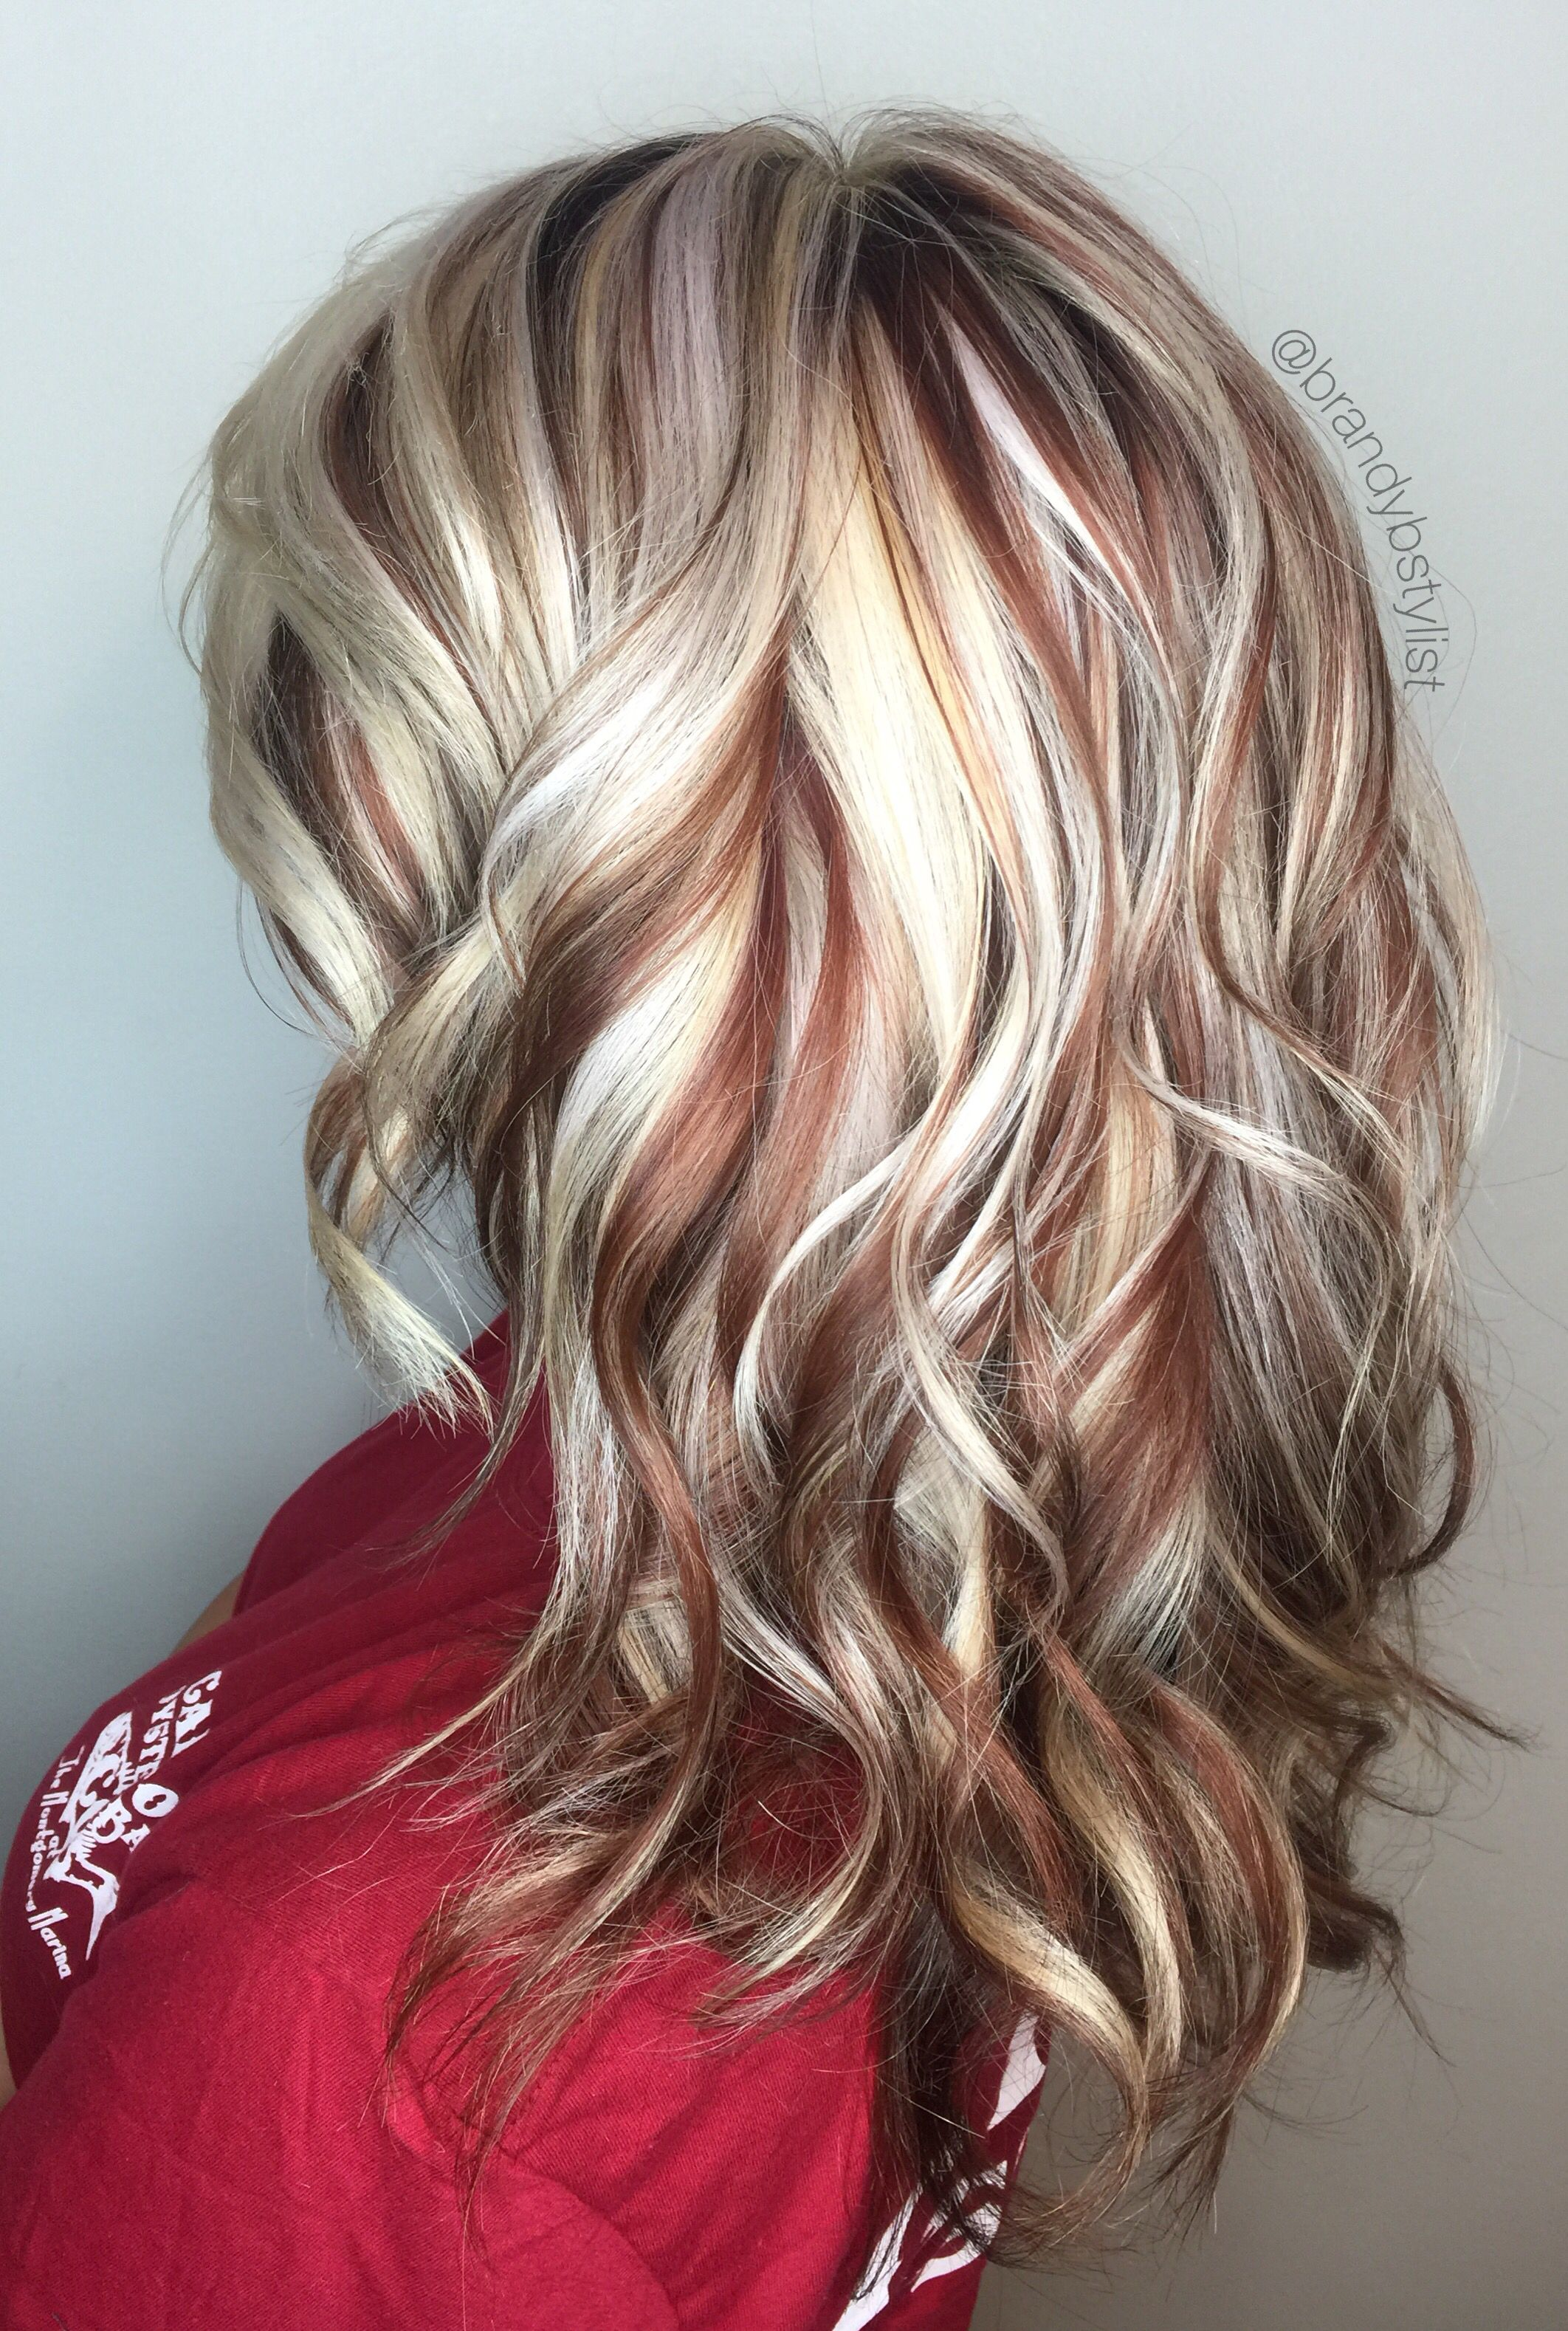 blonde and red highlights